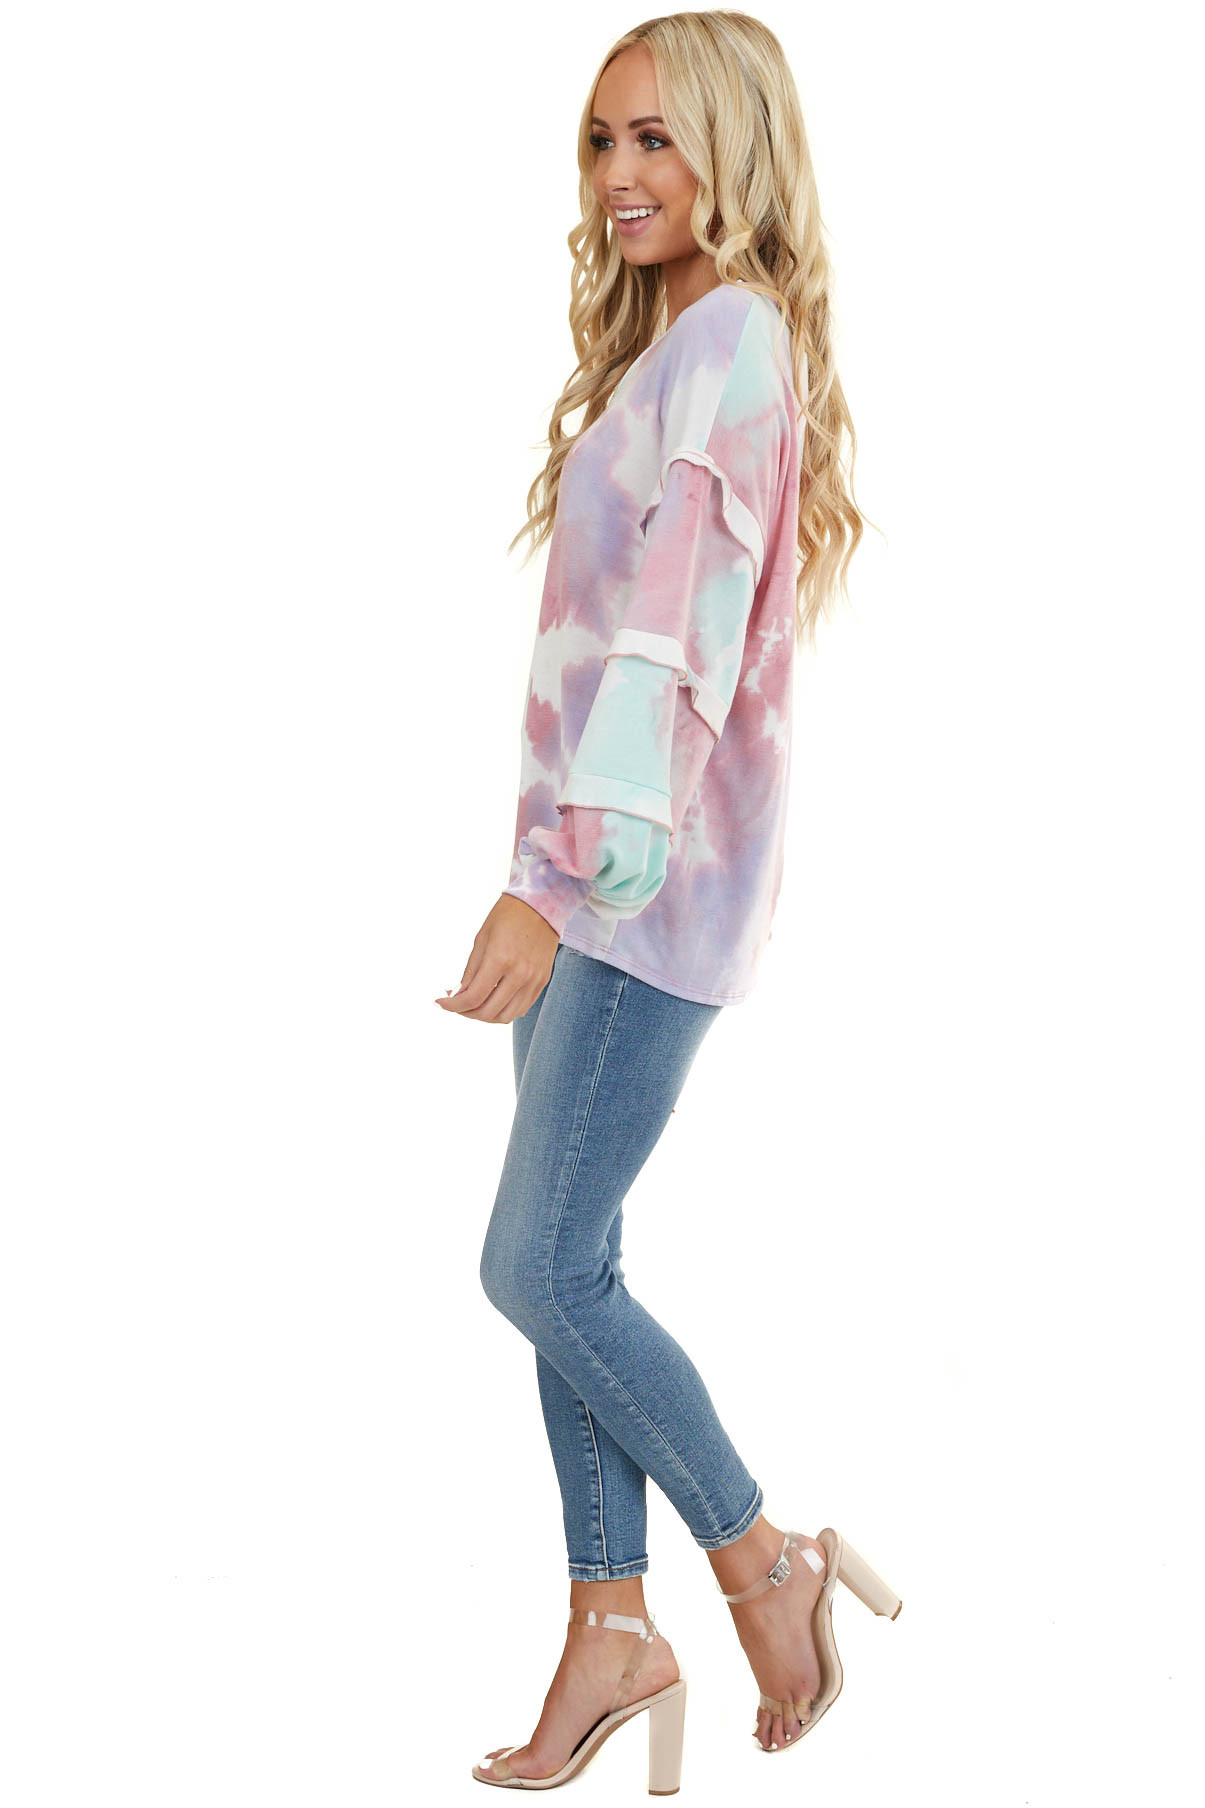 Pink and Teal Tie Dye Top with Long Ruffle Bubble Sleeves